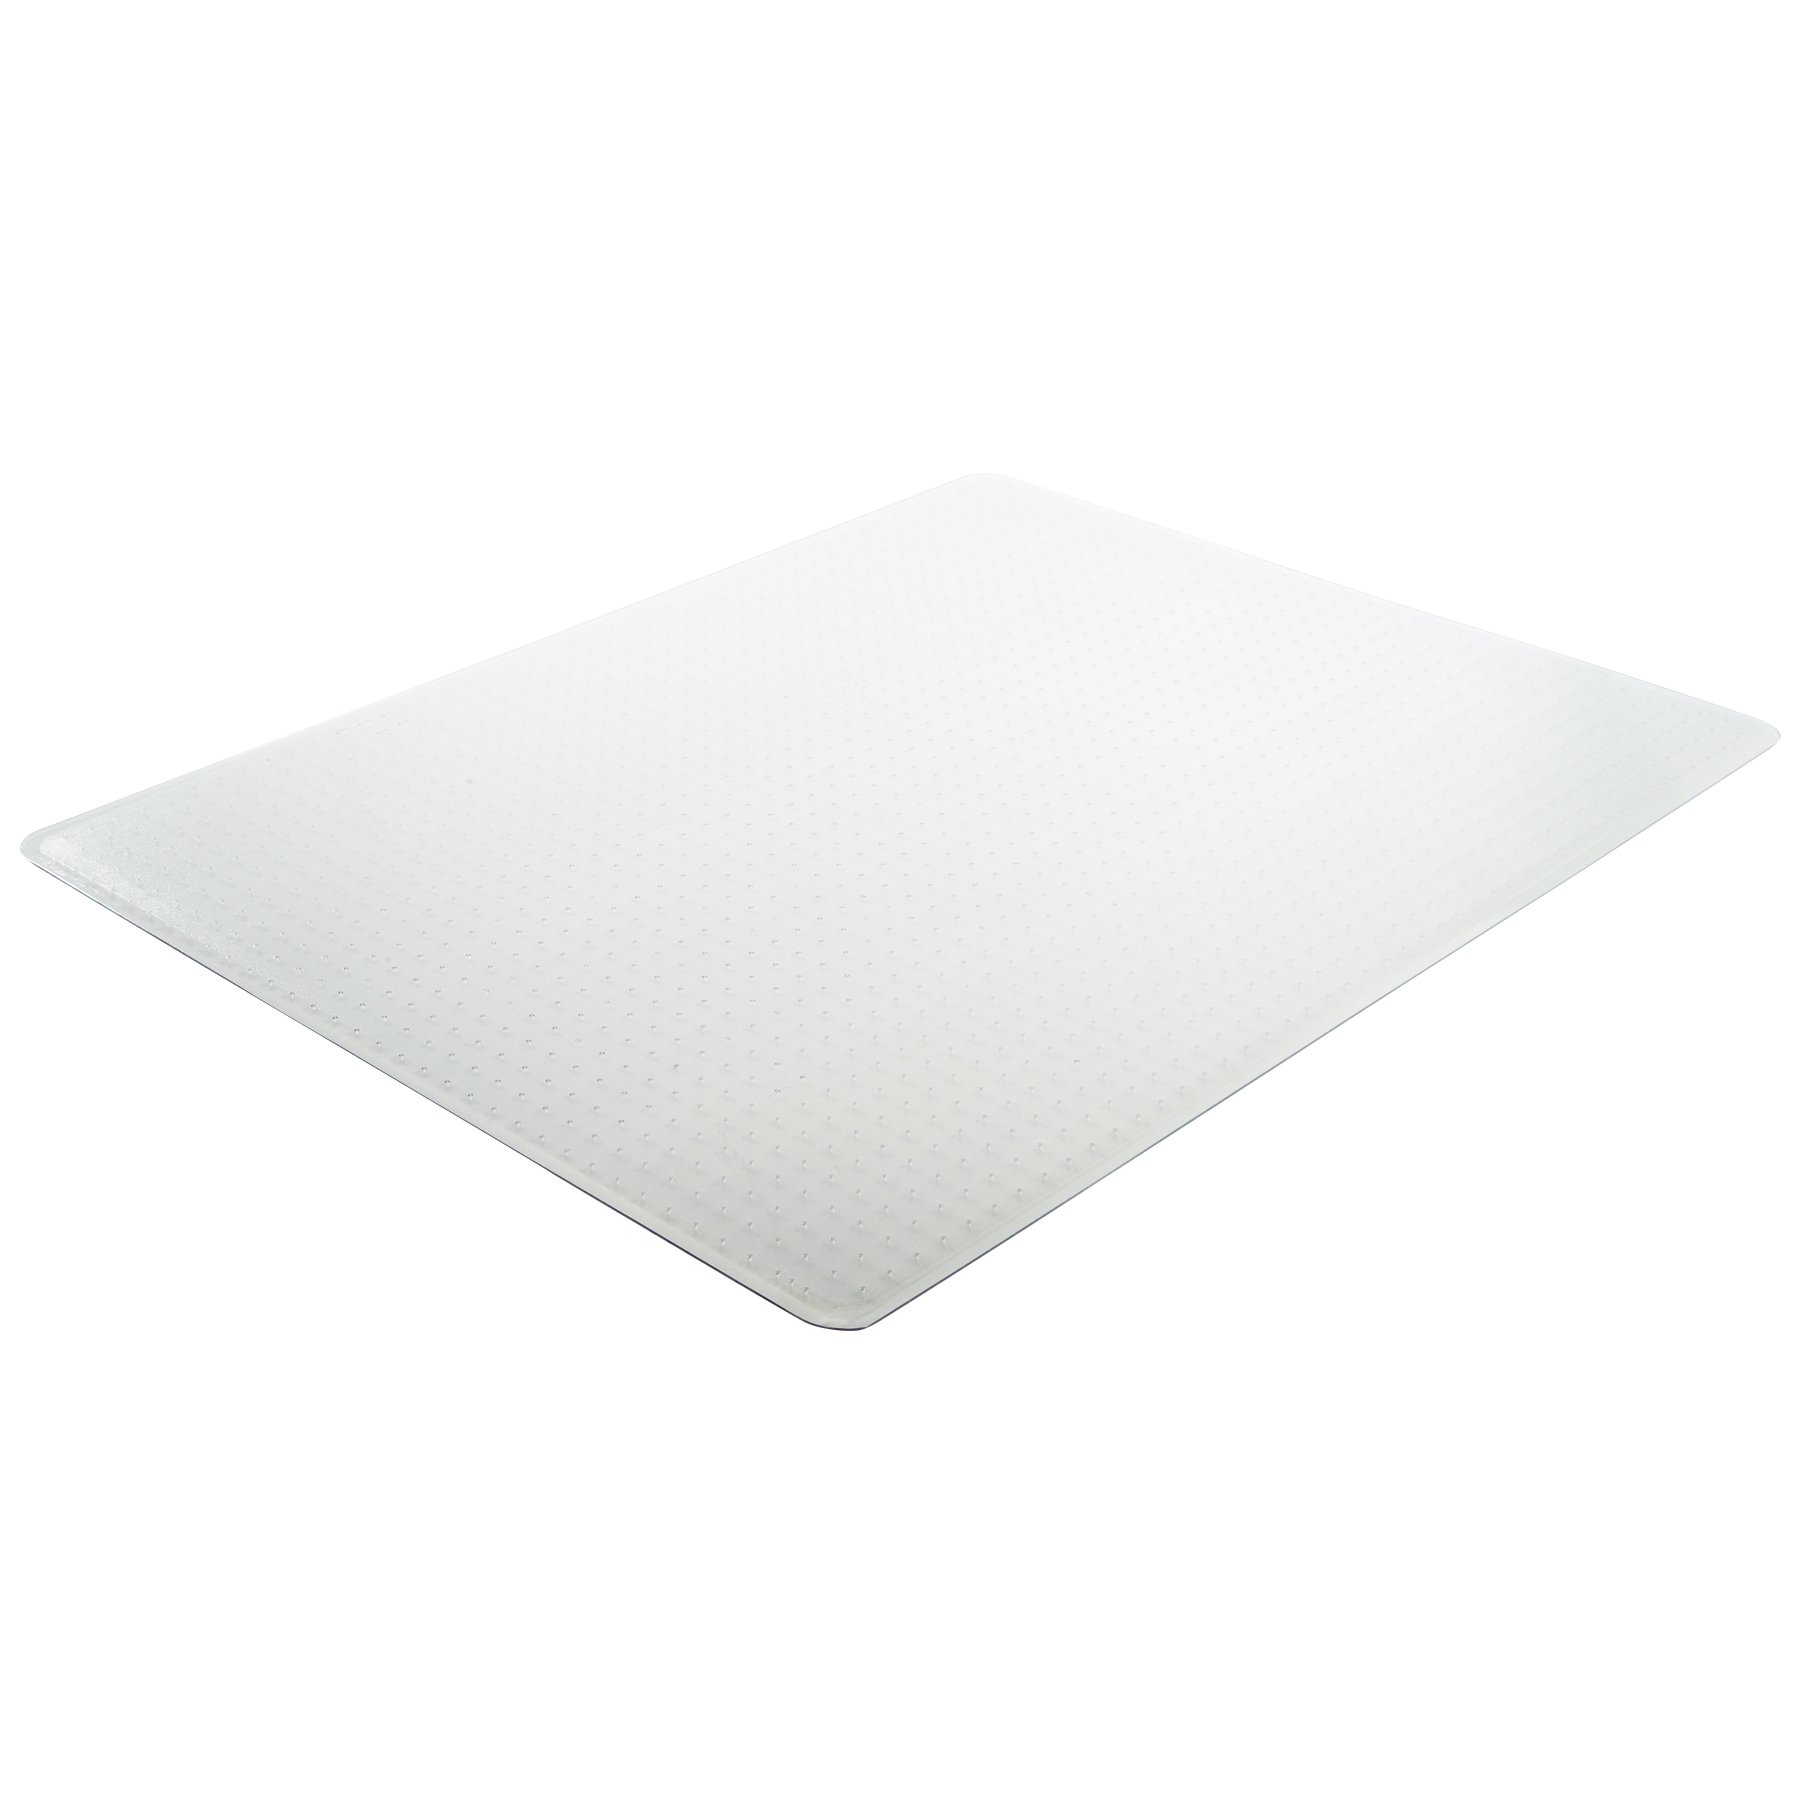 Deflecto RollaMat Clear Chair Mat, Medium Pile Carpet Use, Rectangle, Beveled Edge, 36 x 48 Inches (CM15143) by Deflecto